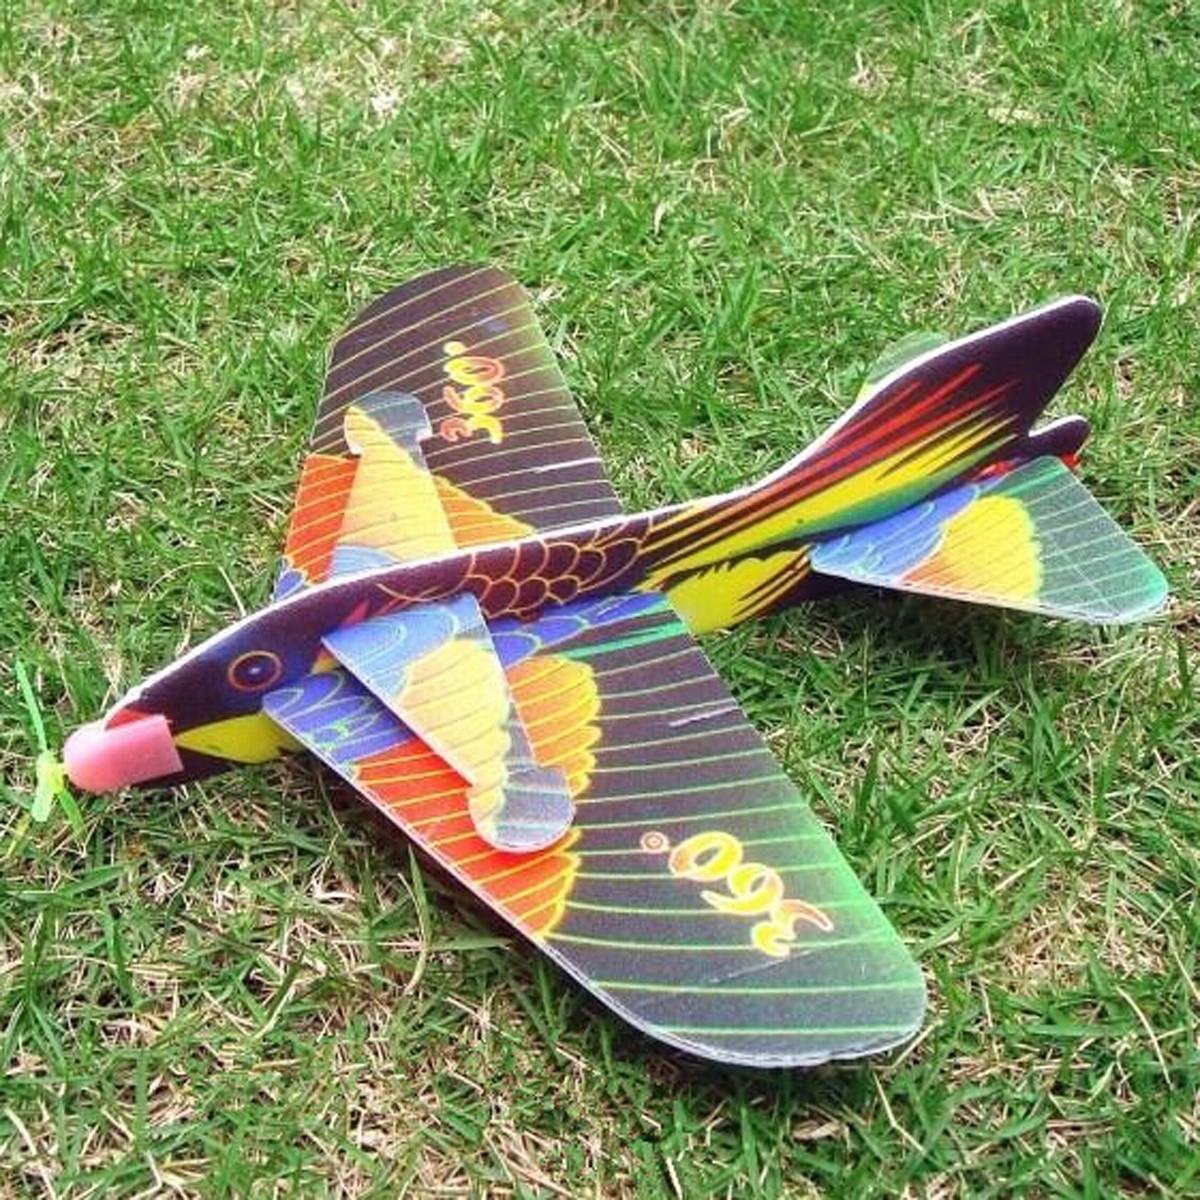 Mini DIY Foam Kids Hand Throwing Flying Aircraft Airplane Glider Toys